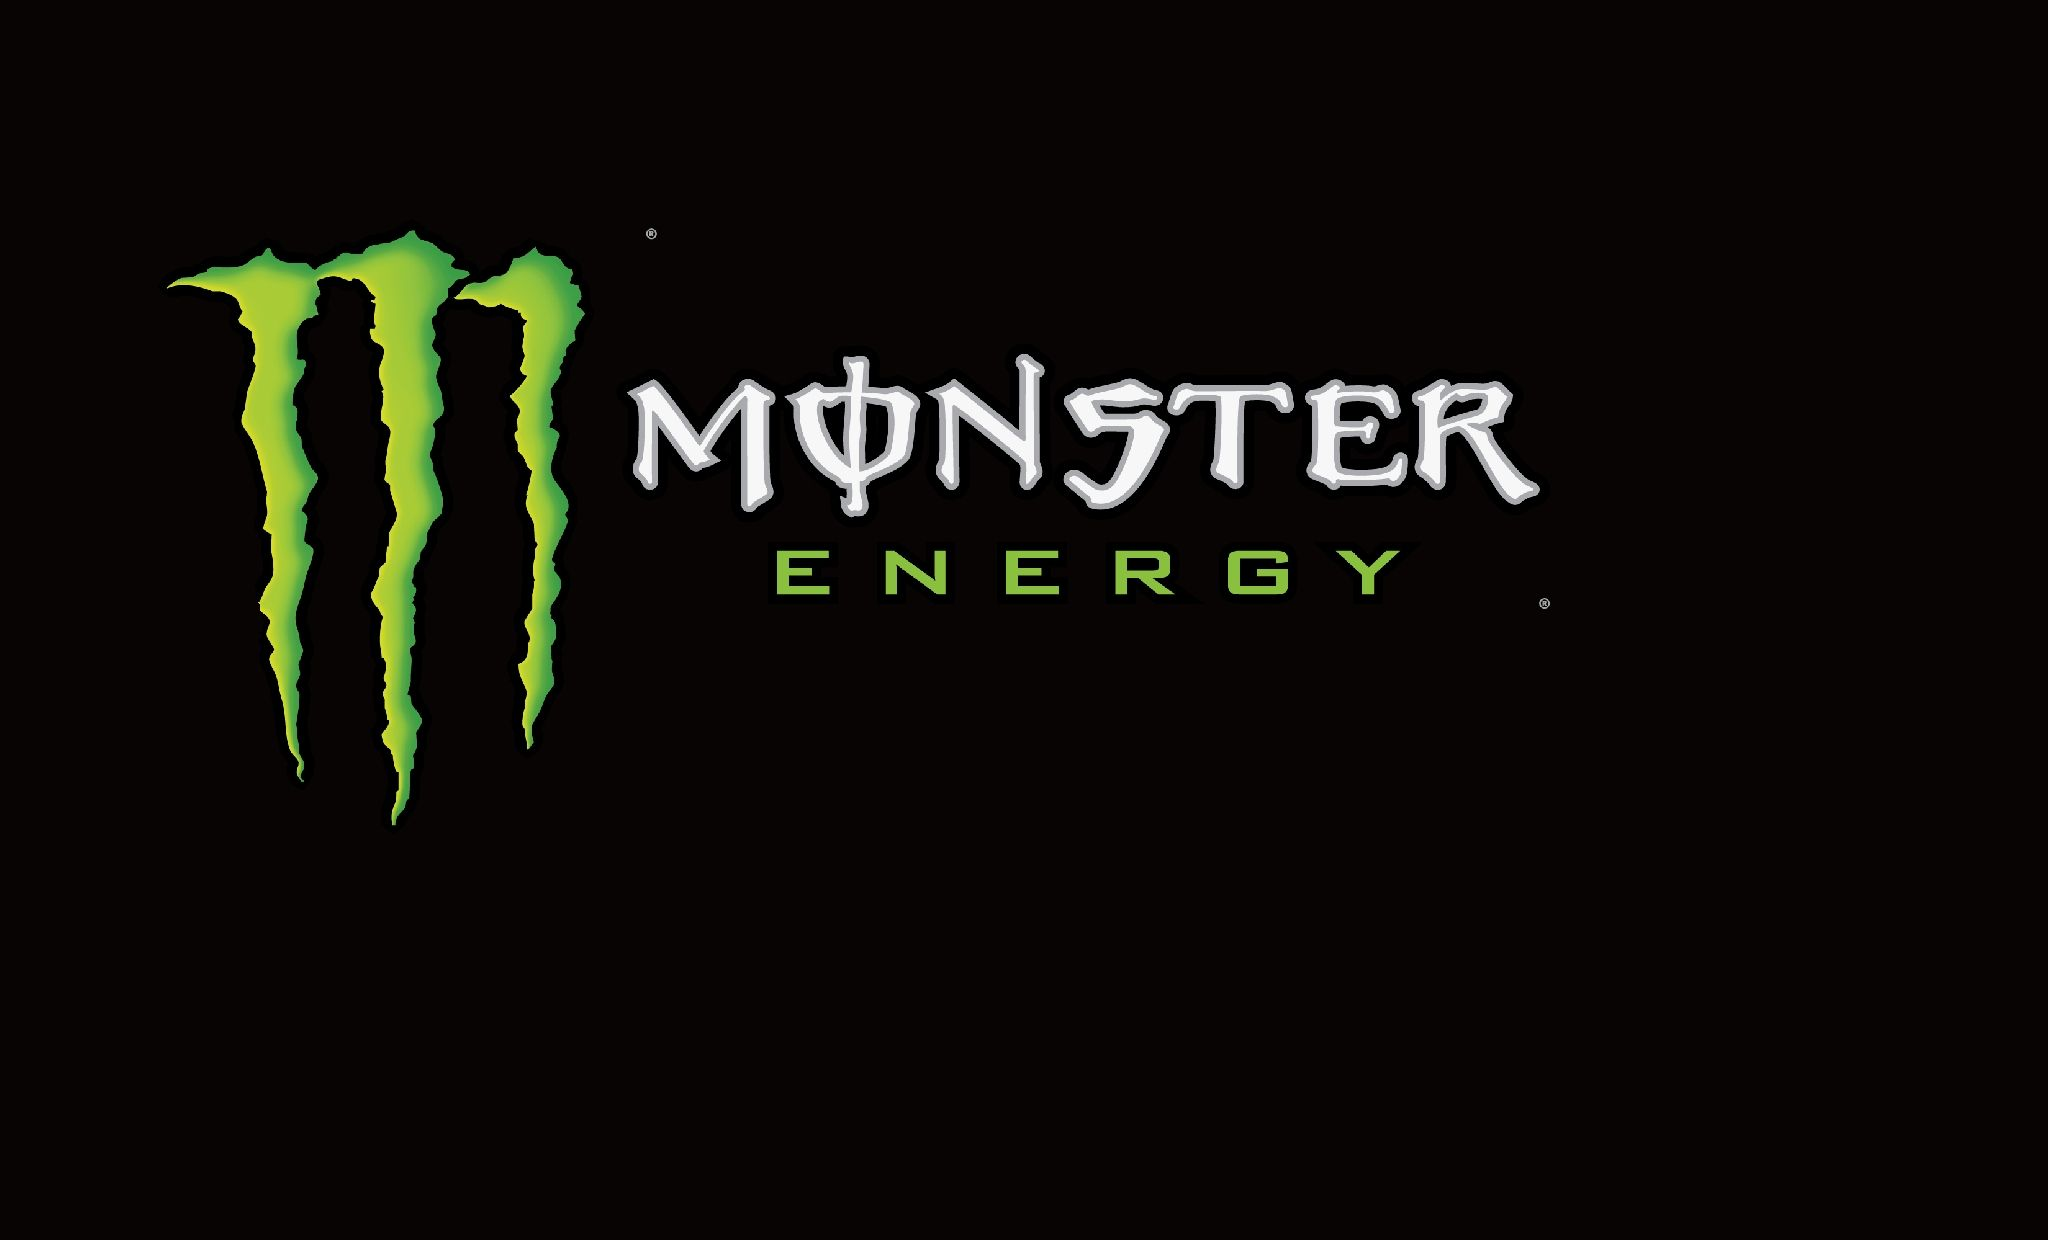 Monster Energy Wallpaper Free | Sharovarka | Pinterest | Monsters And  Wallpaper